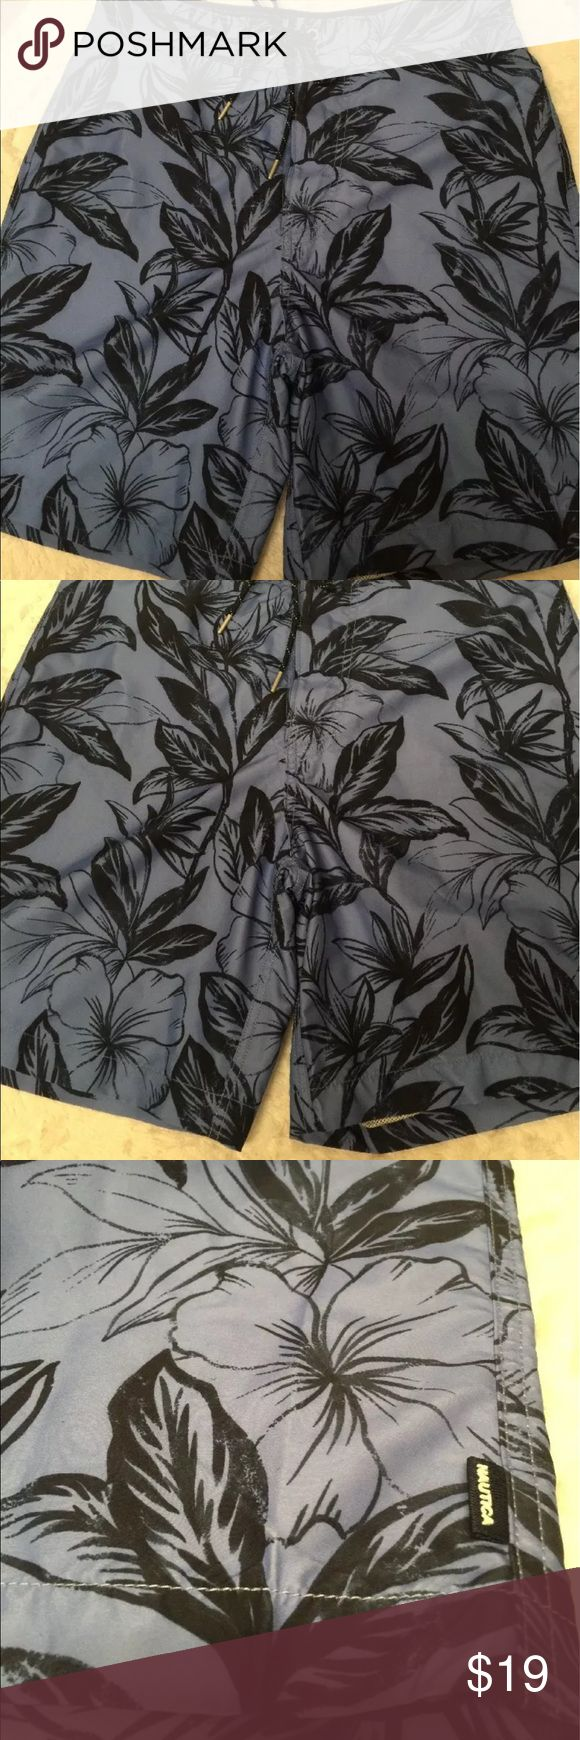 "NAUTICA Men's  Blue Black Swim Trunks Sz 30 This Nautica Black and Blue Floral Swim Trunks is Size 30. It features a built in mesh underwear and adjustable waist drawstrings. 30"" waist, 20"" length. Nautica Swim Swim Trunks"